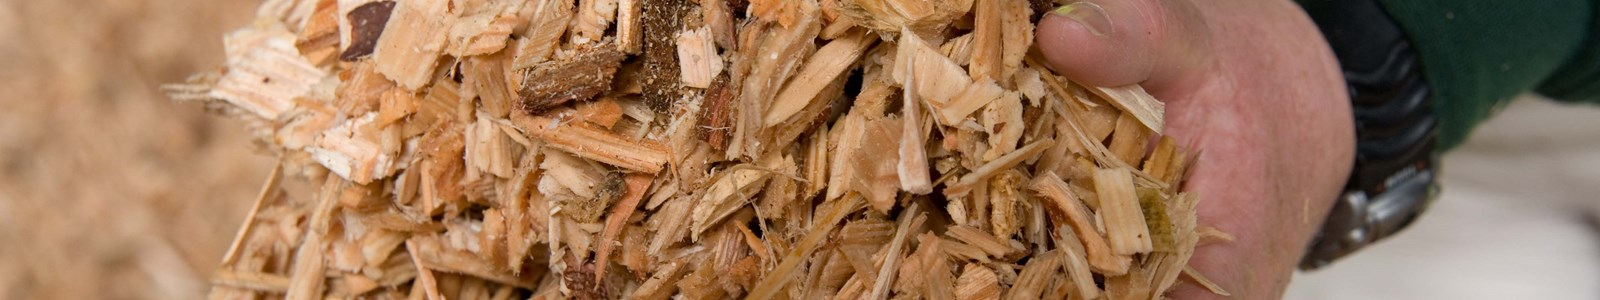 woodchip Forestry Comission